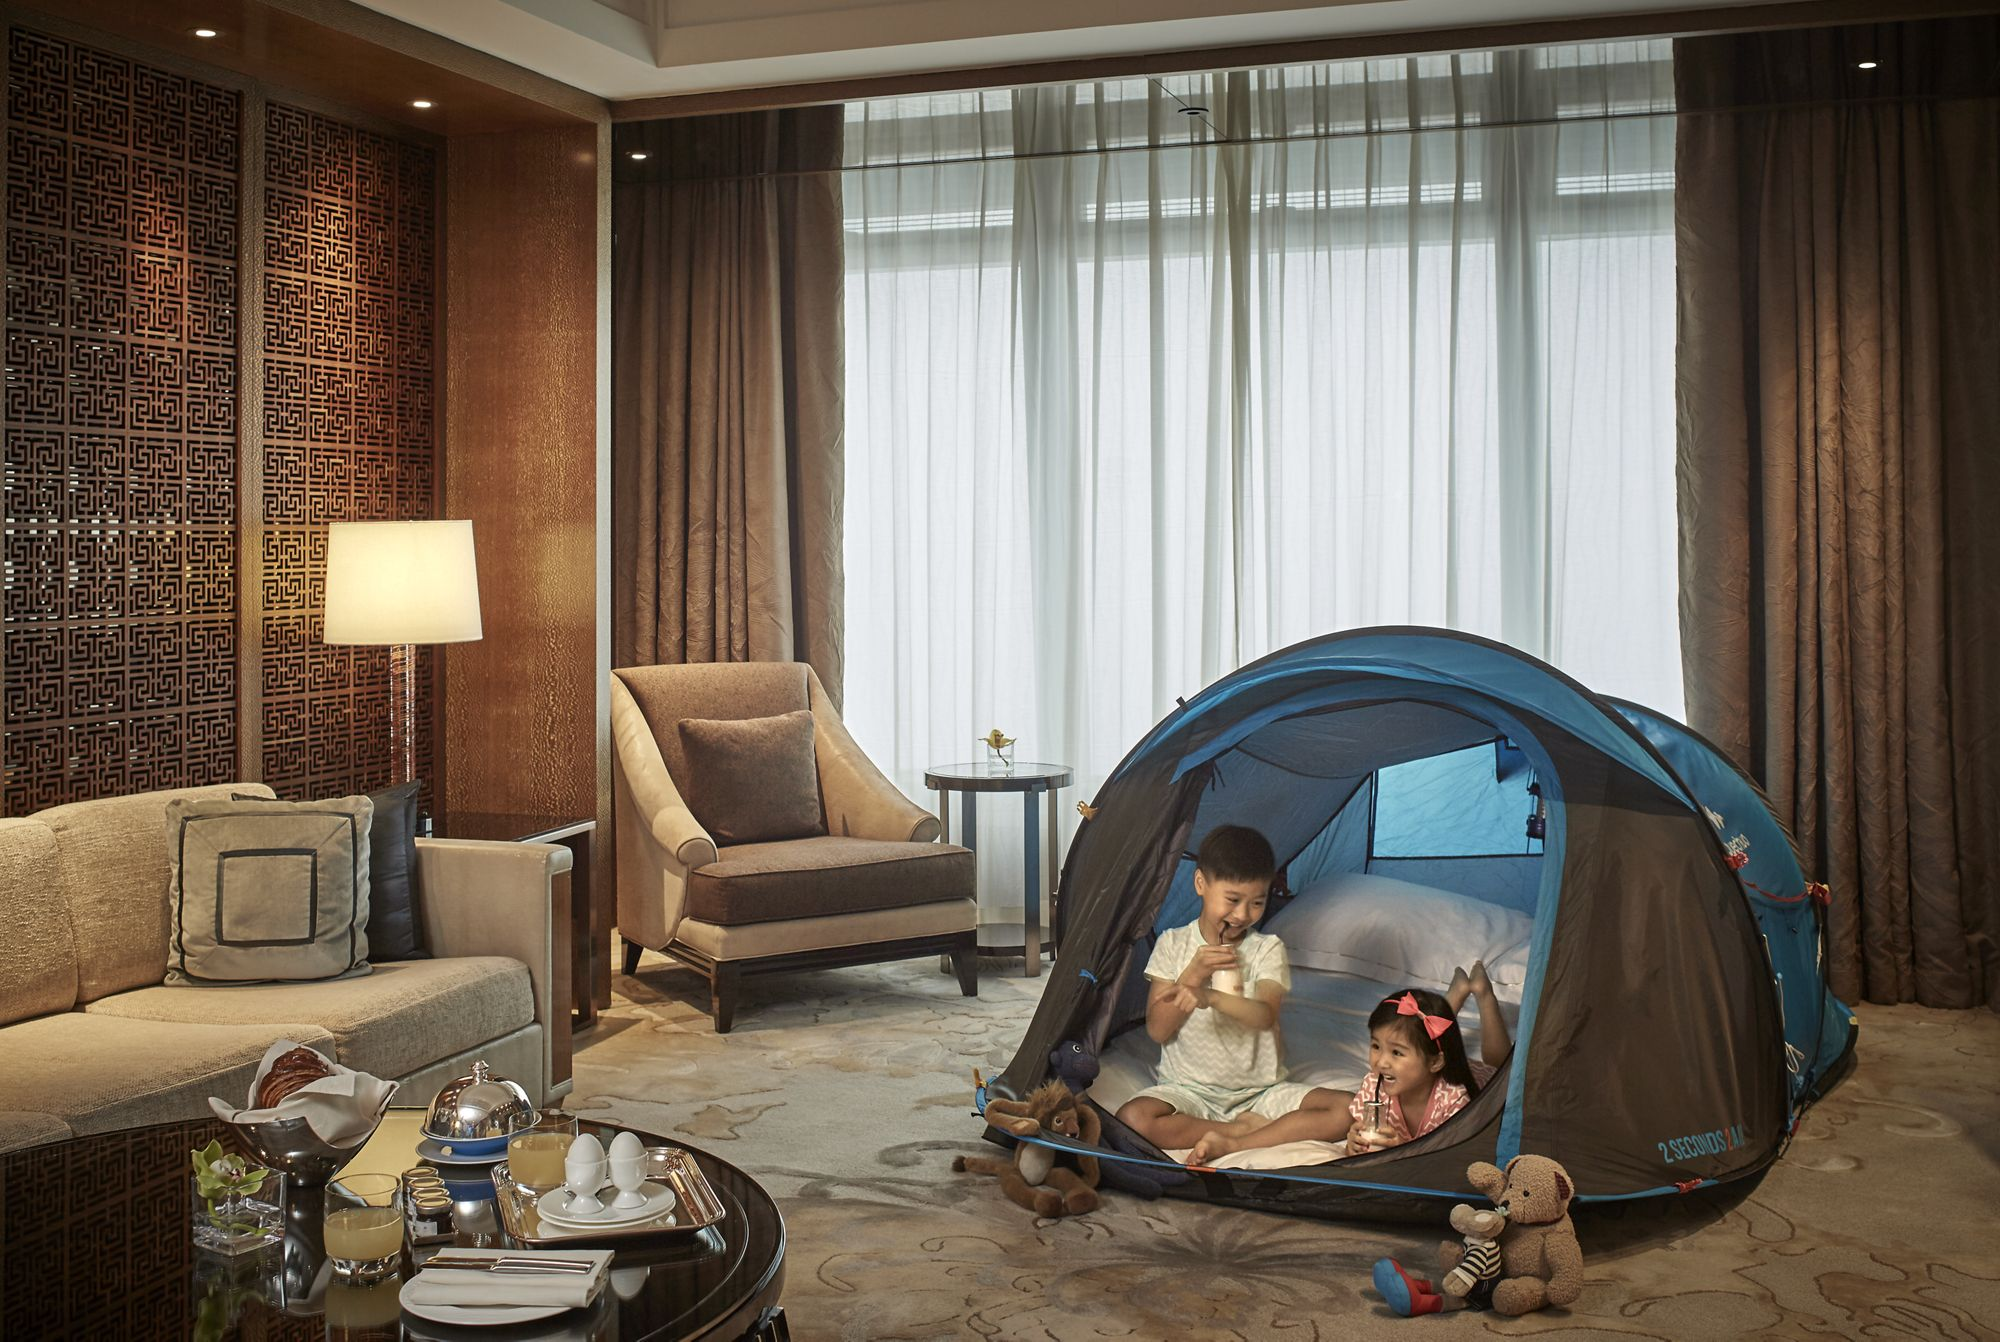 Two kids in a tent within a hotel guest room